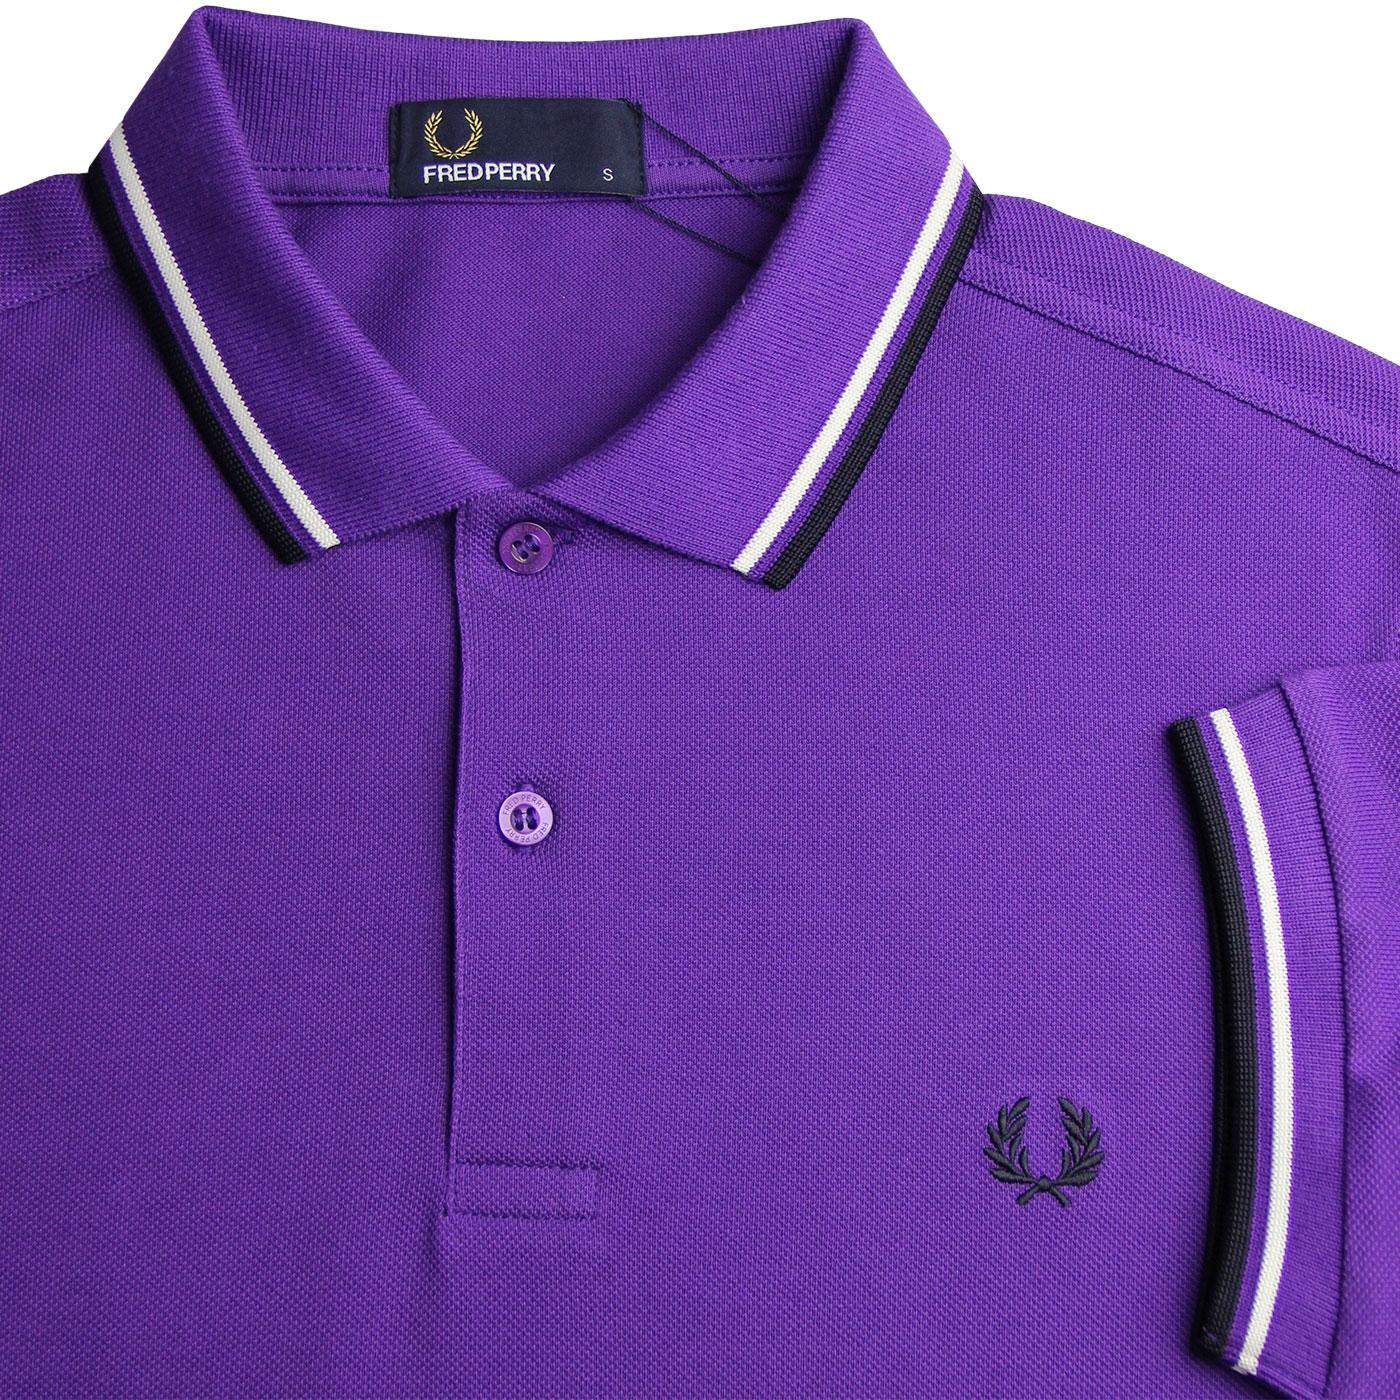 7650ce3dc FRED PERRY M3600 Retro Mod Twin Tipped Polo Shirt Purple